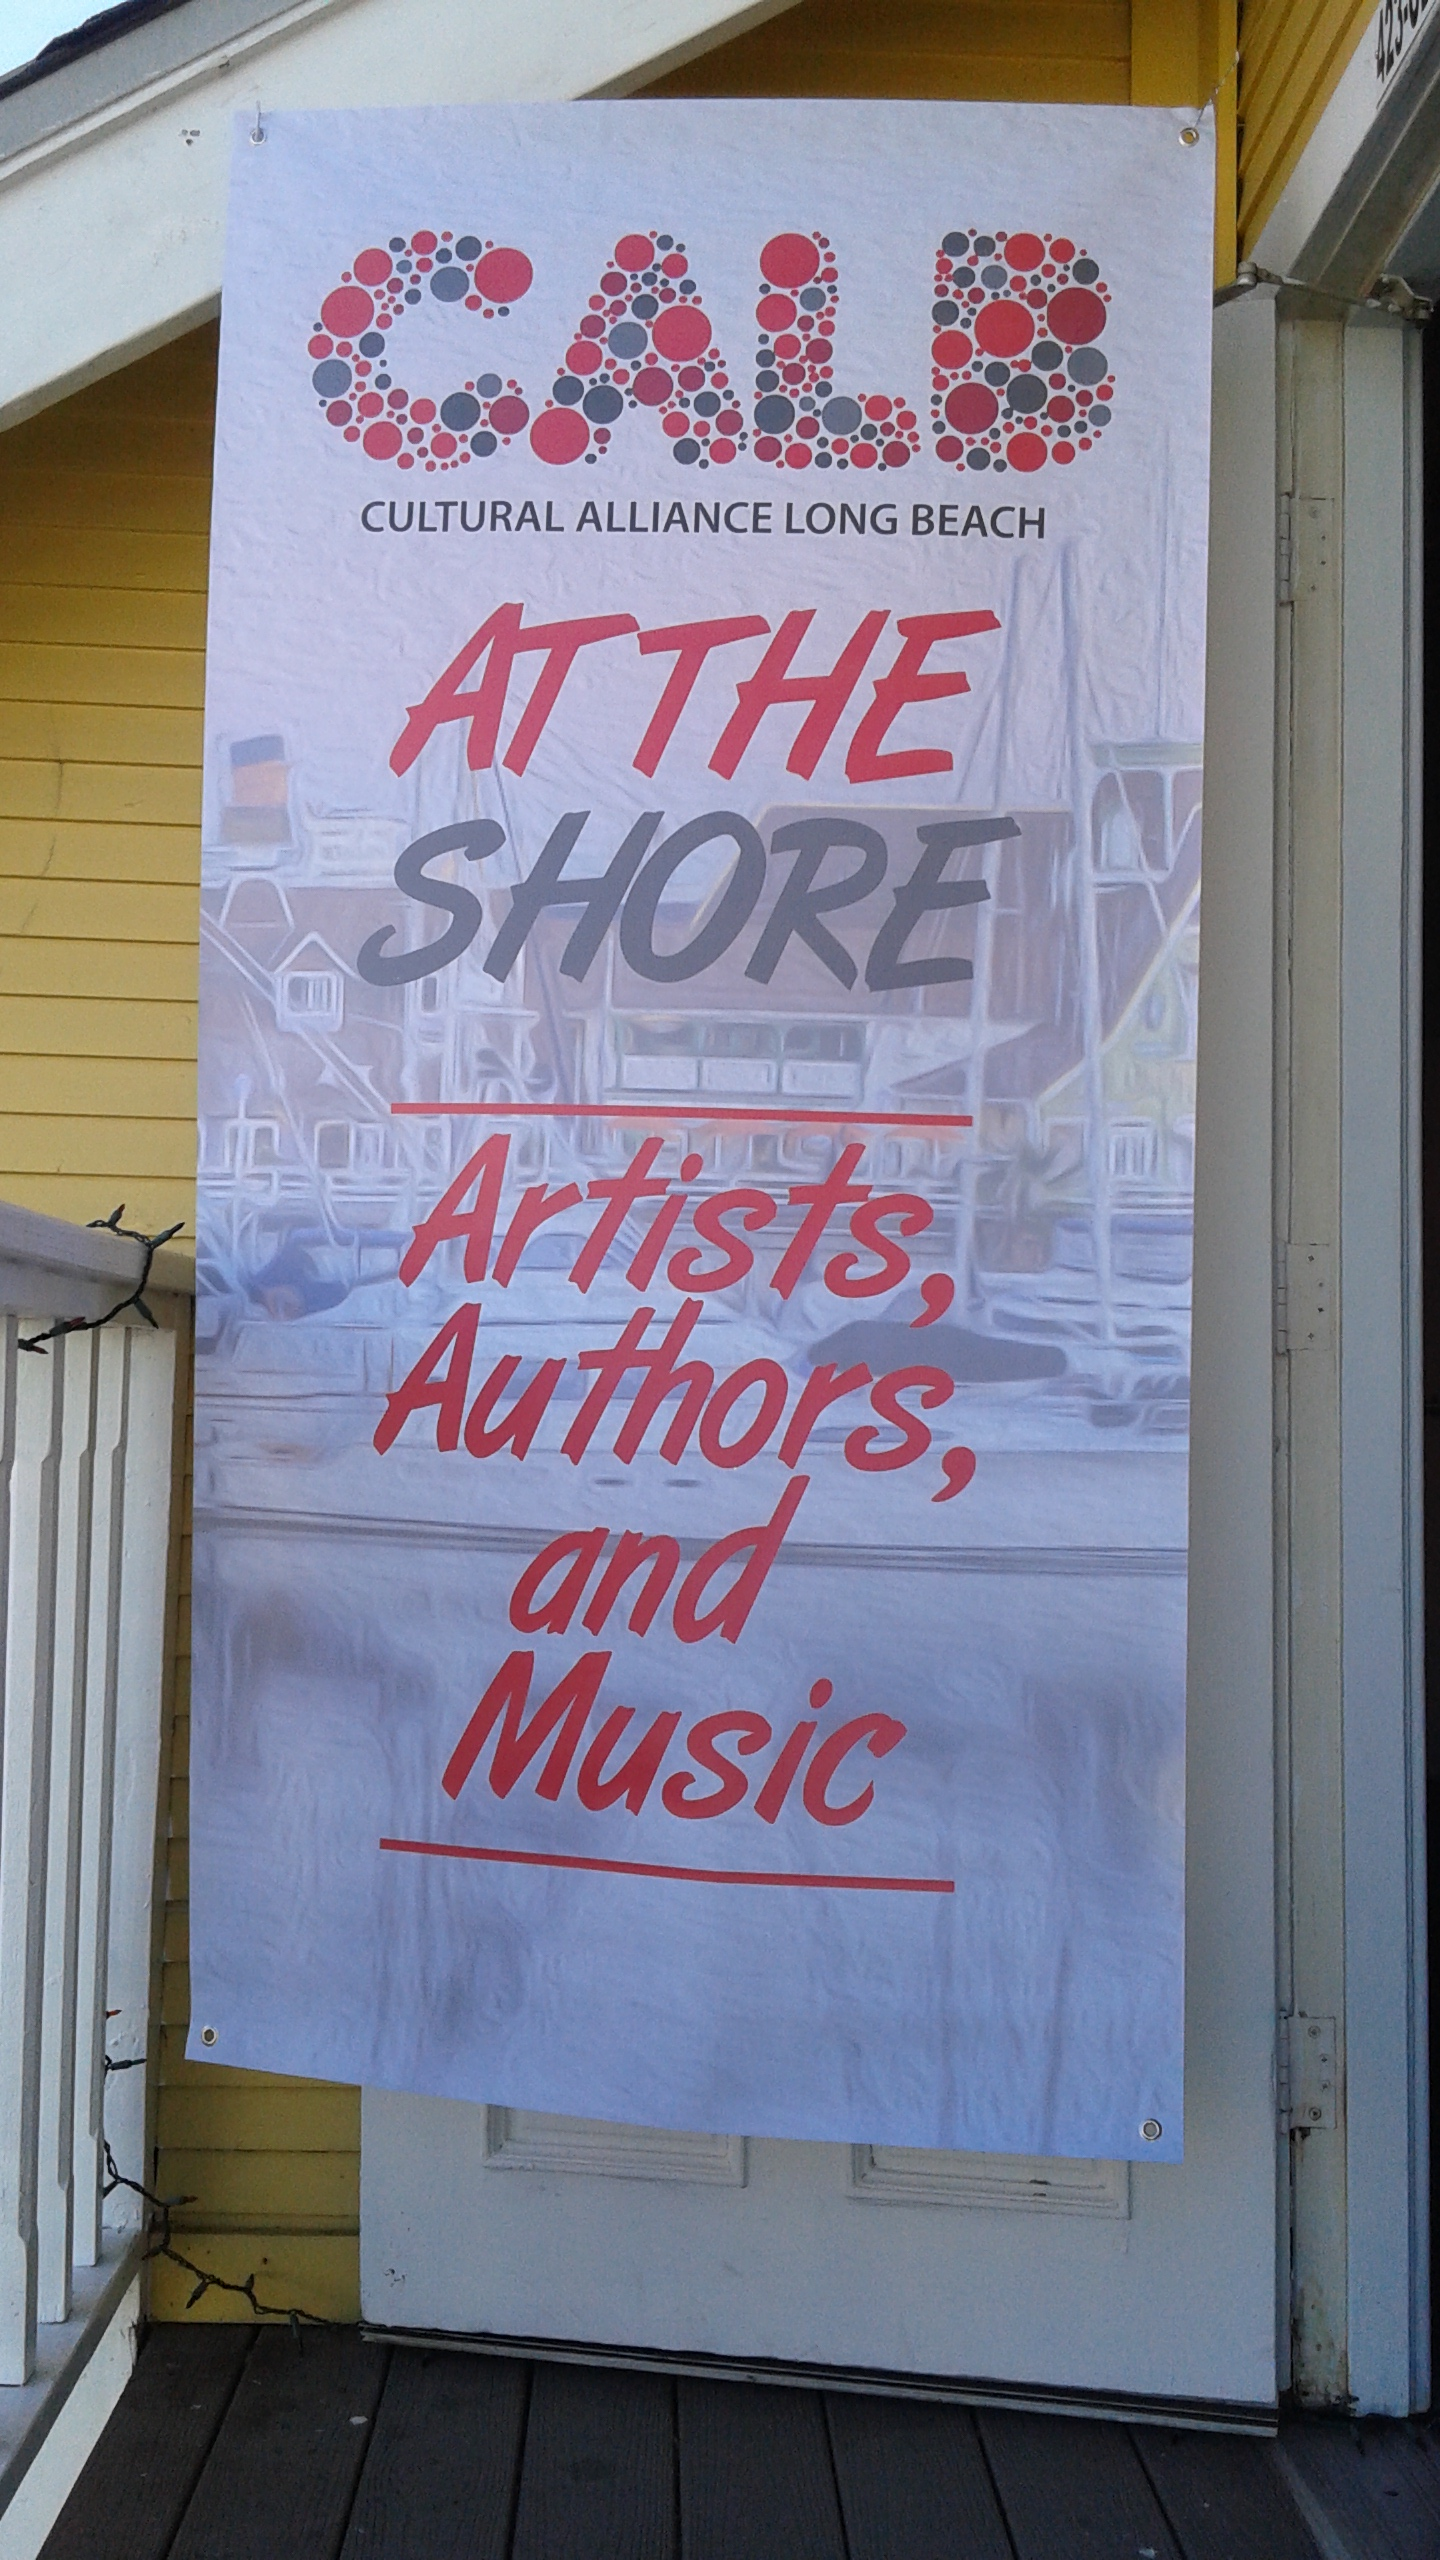 CALB at the Shore Art Music Shoreline Village Long Beach